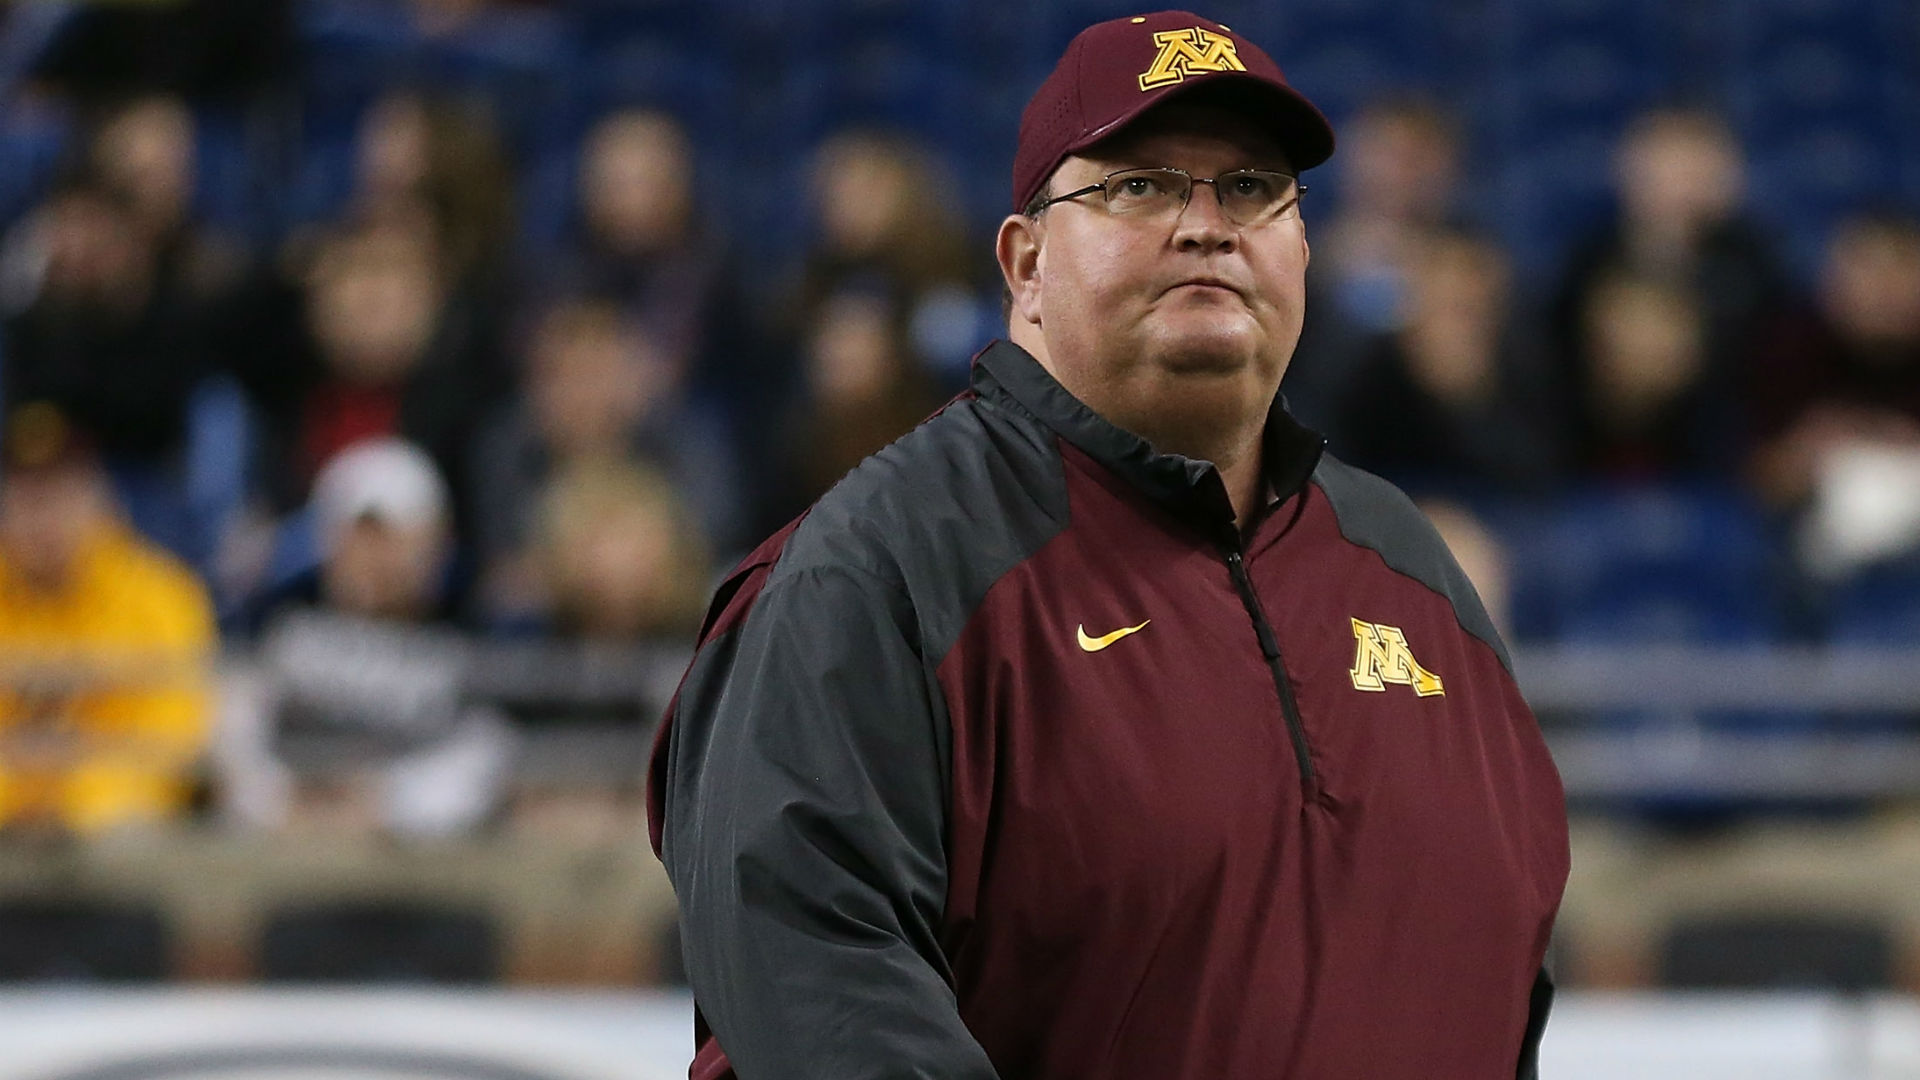 Regents head: Minnesota will learn from team's boycott